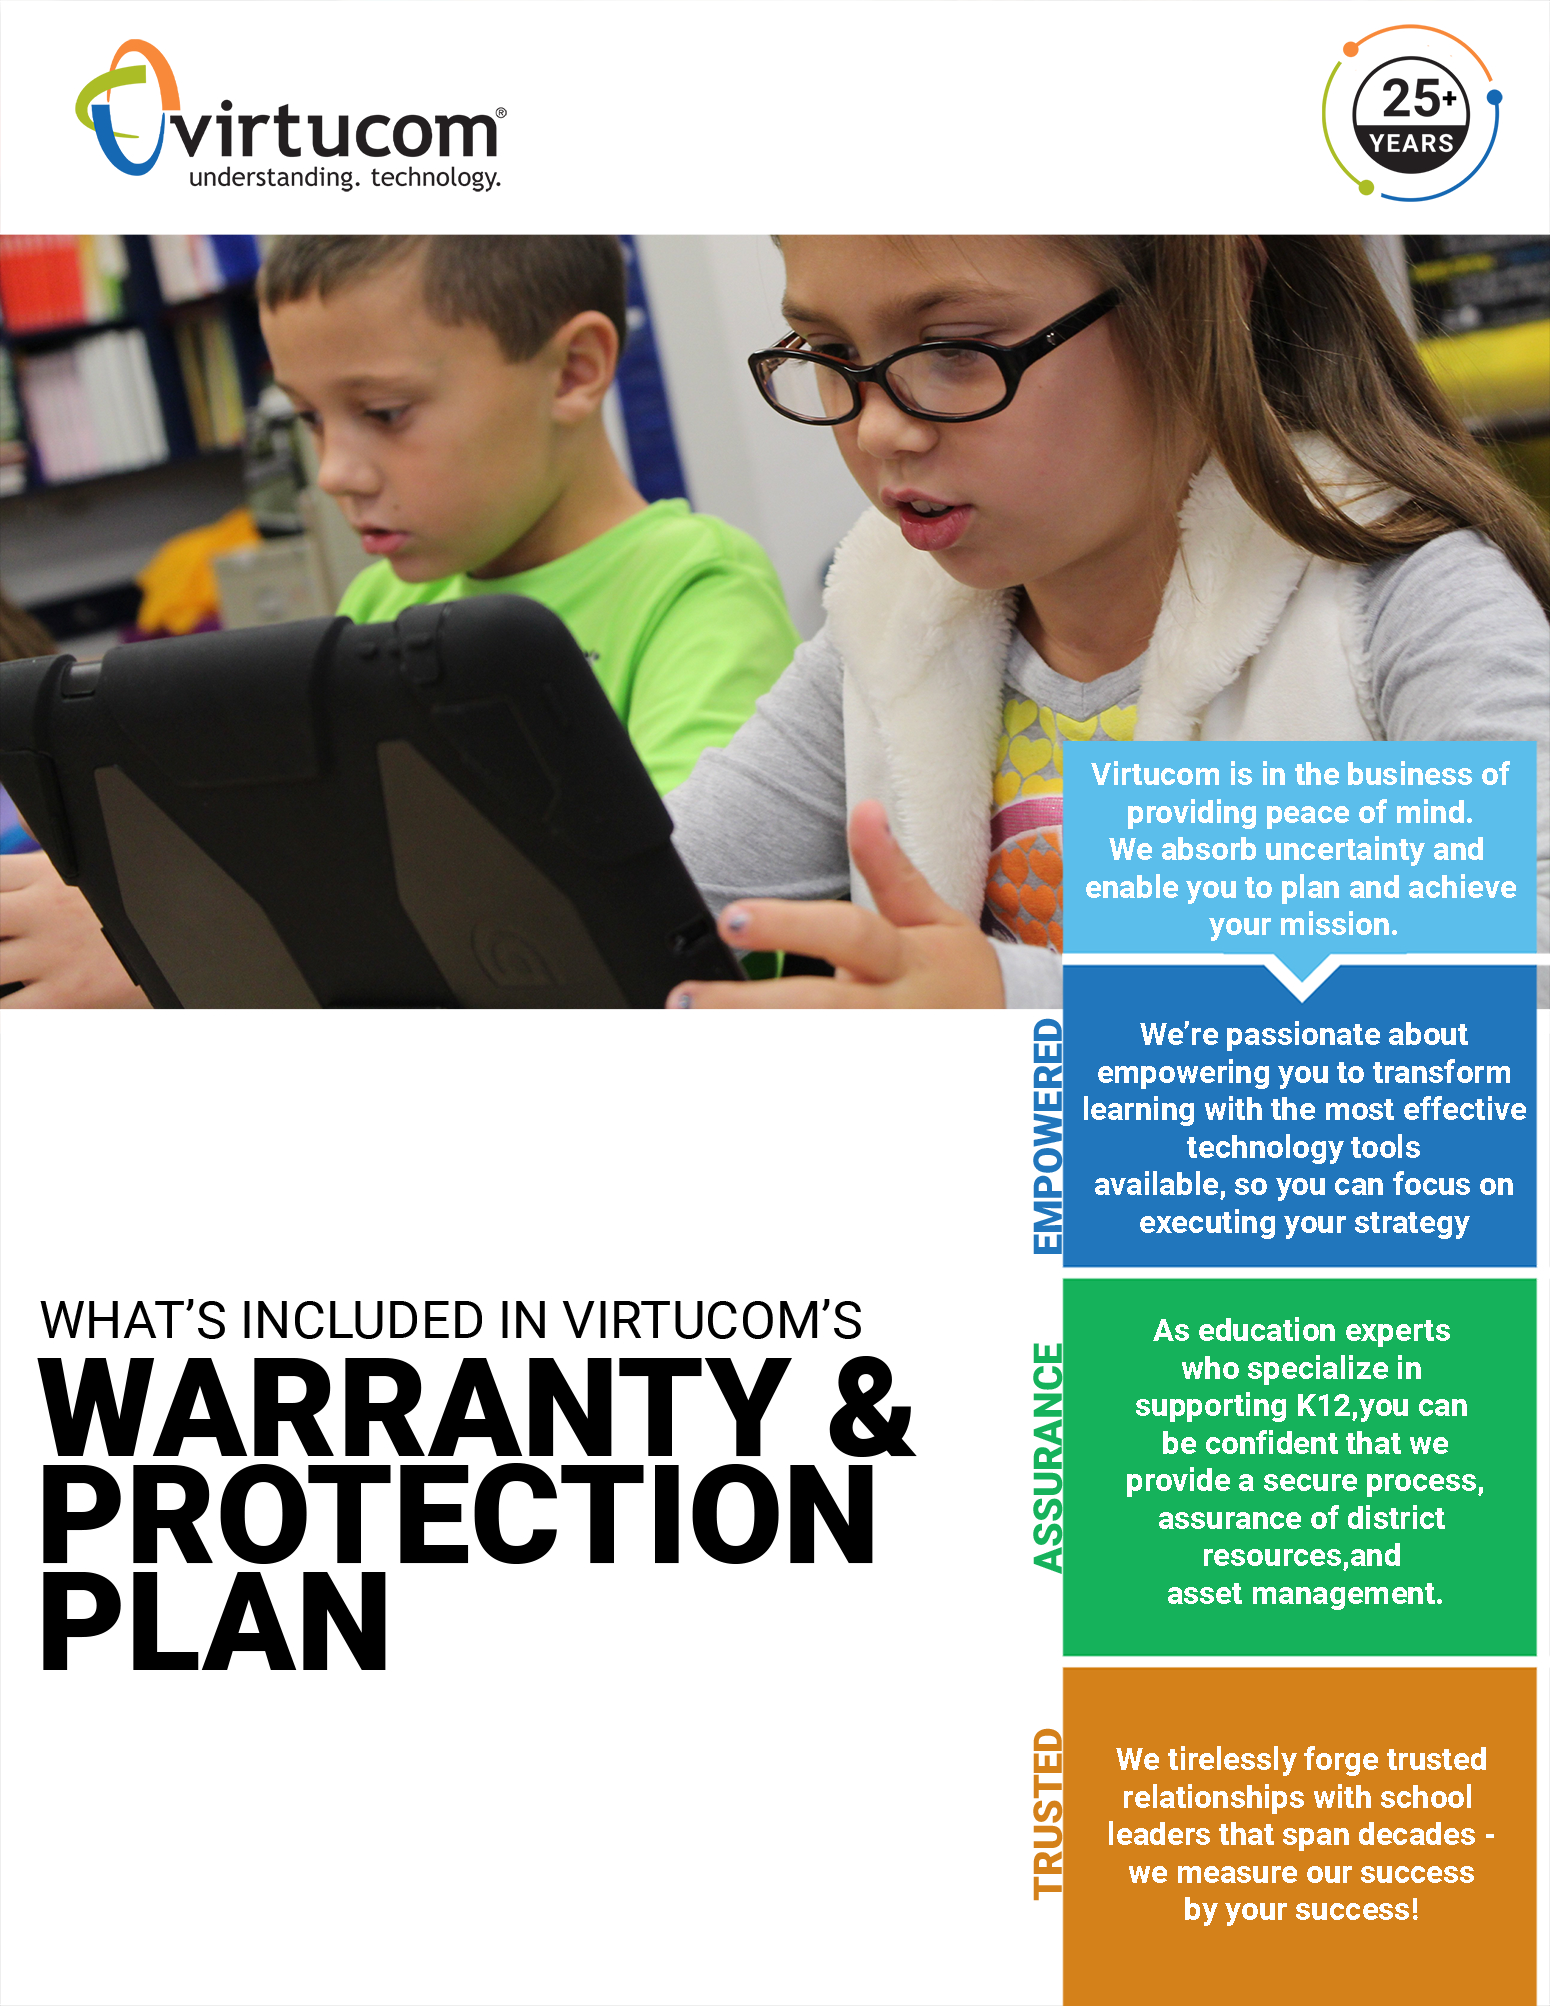 Warranty & Protection Plan